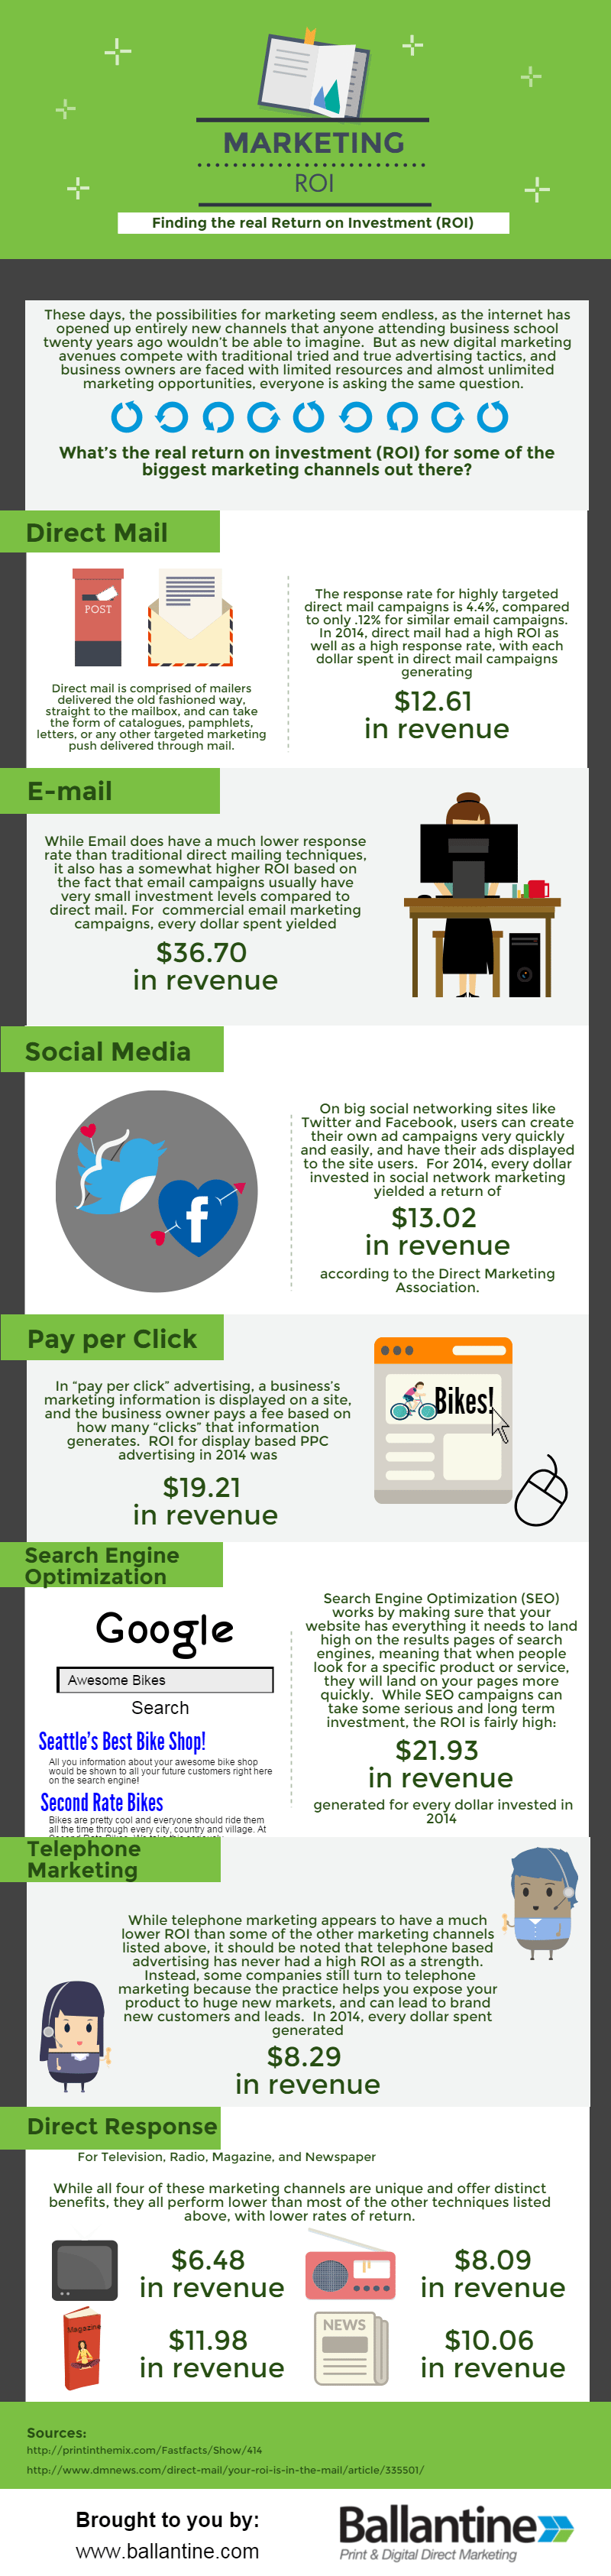 Marketing ROI Infographic